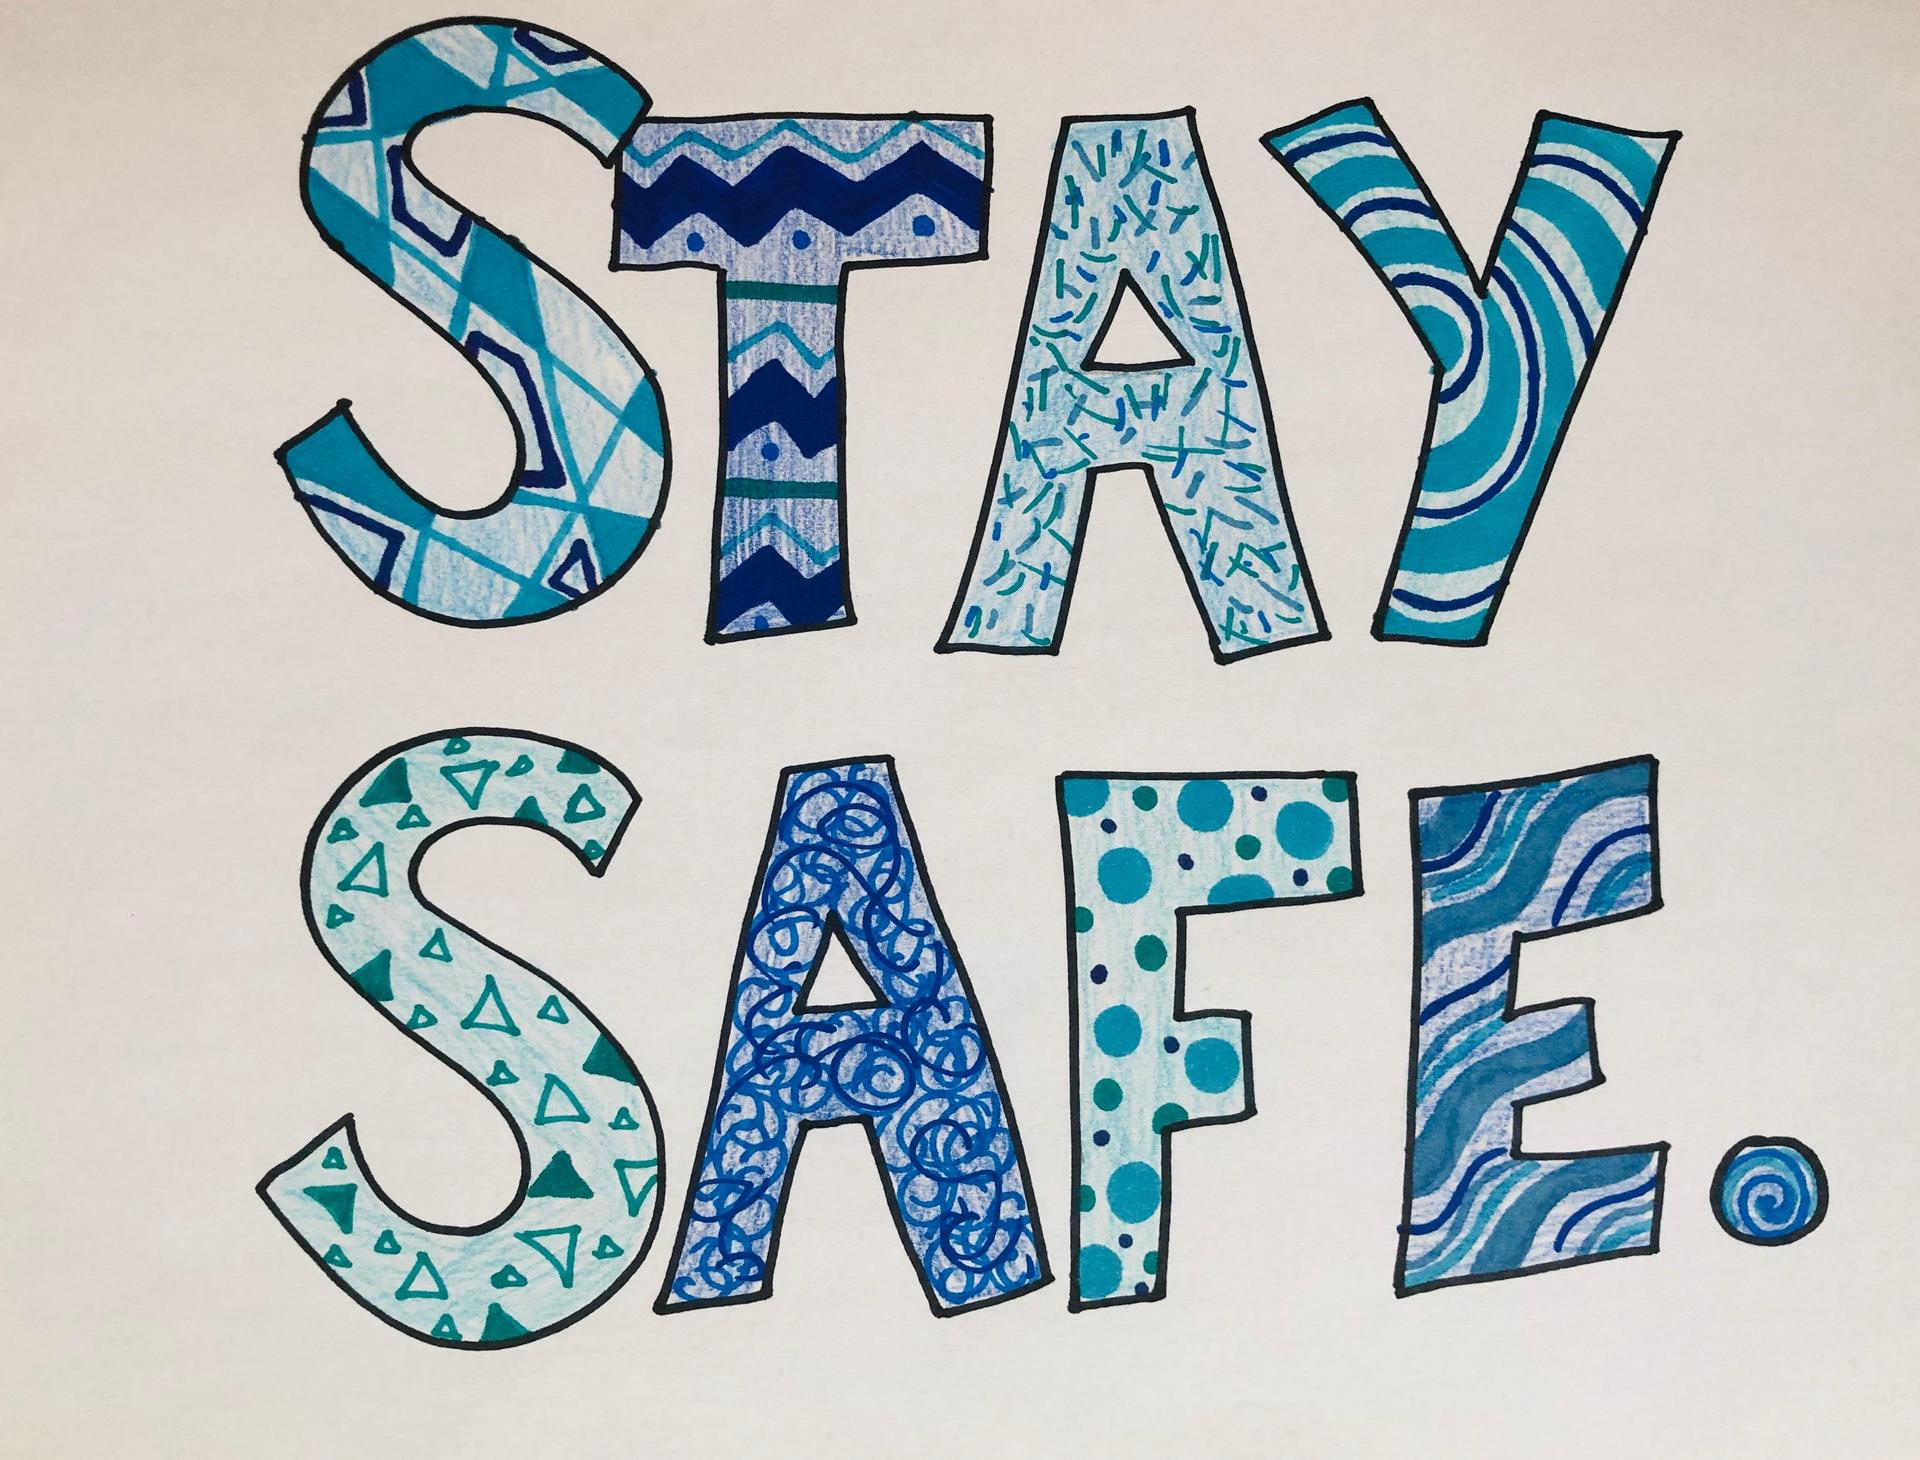 The words 'stay safe' filled in with various shapes, designs, and colors